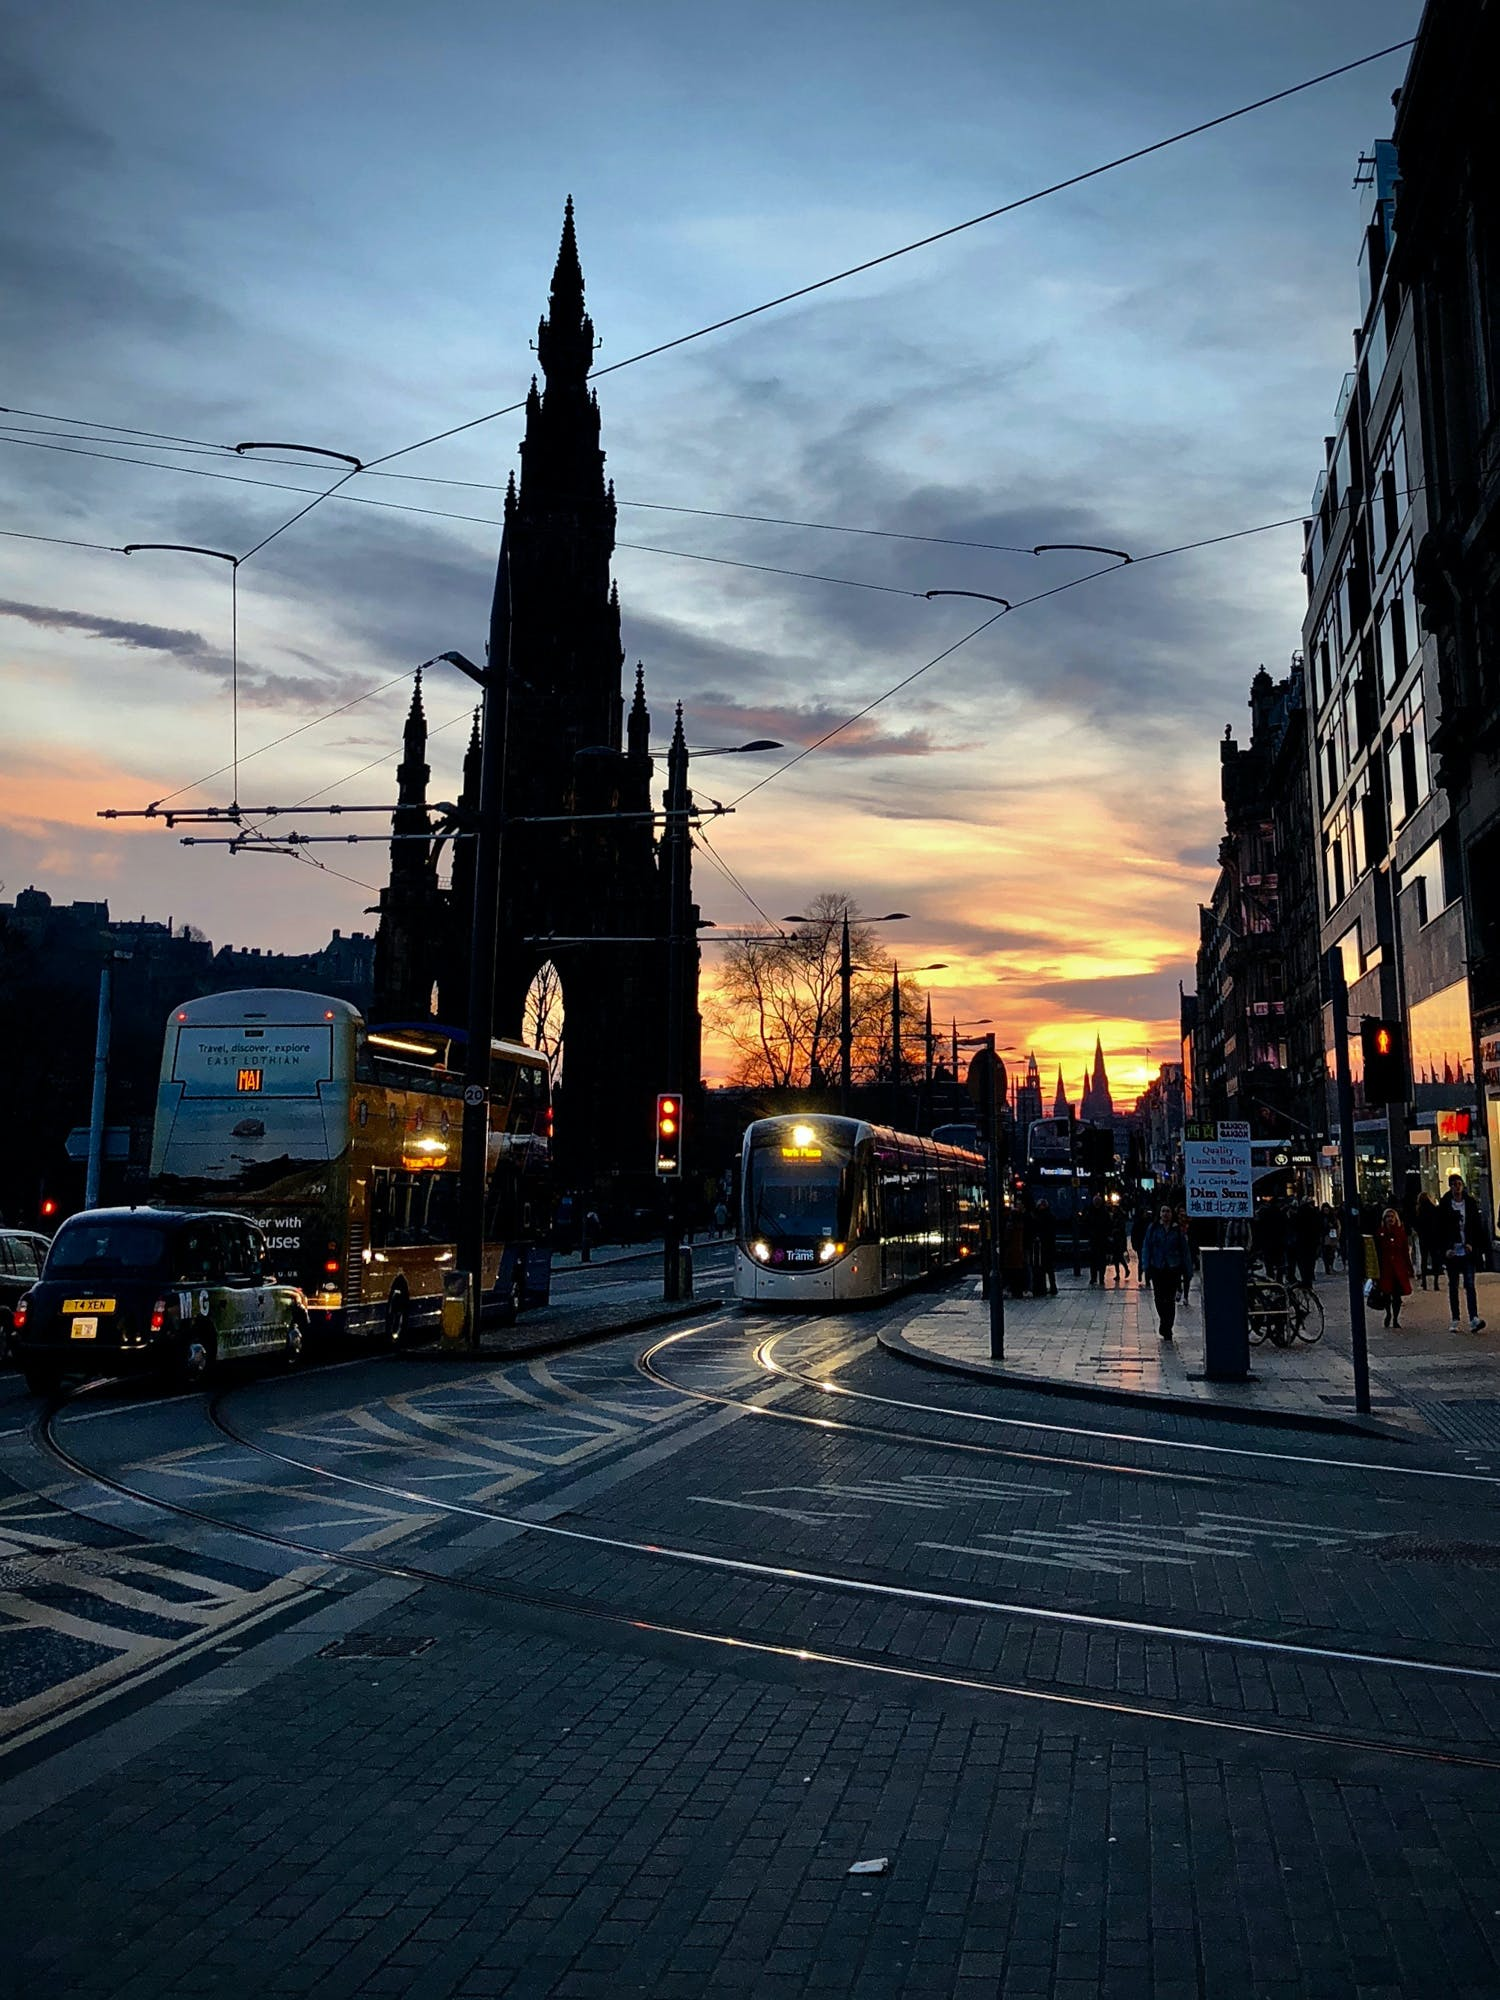 Around the corner is Princes Street